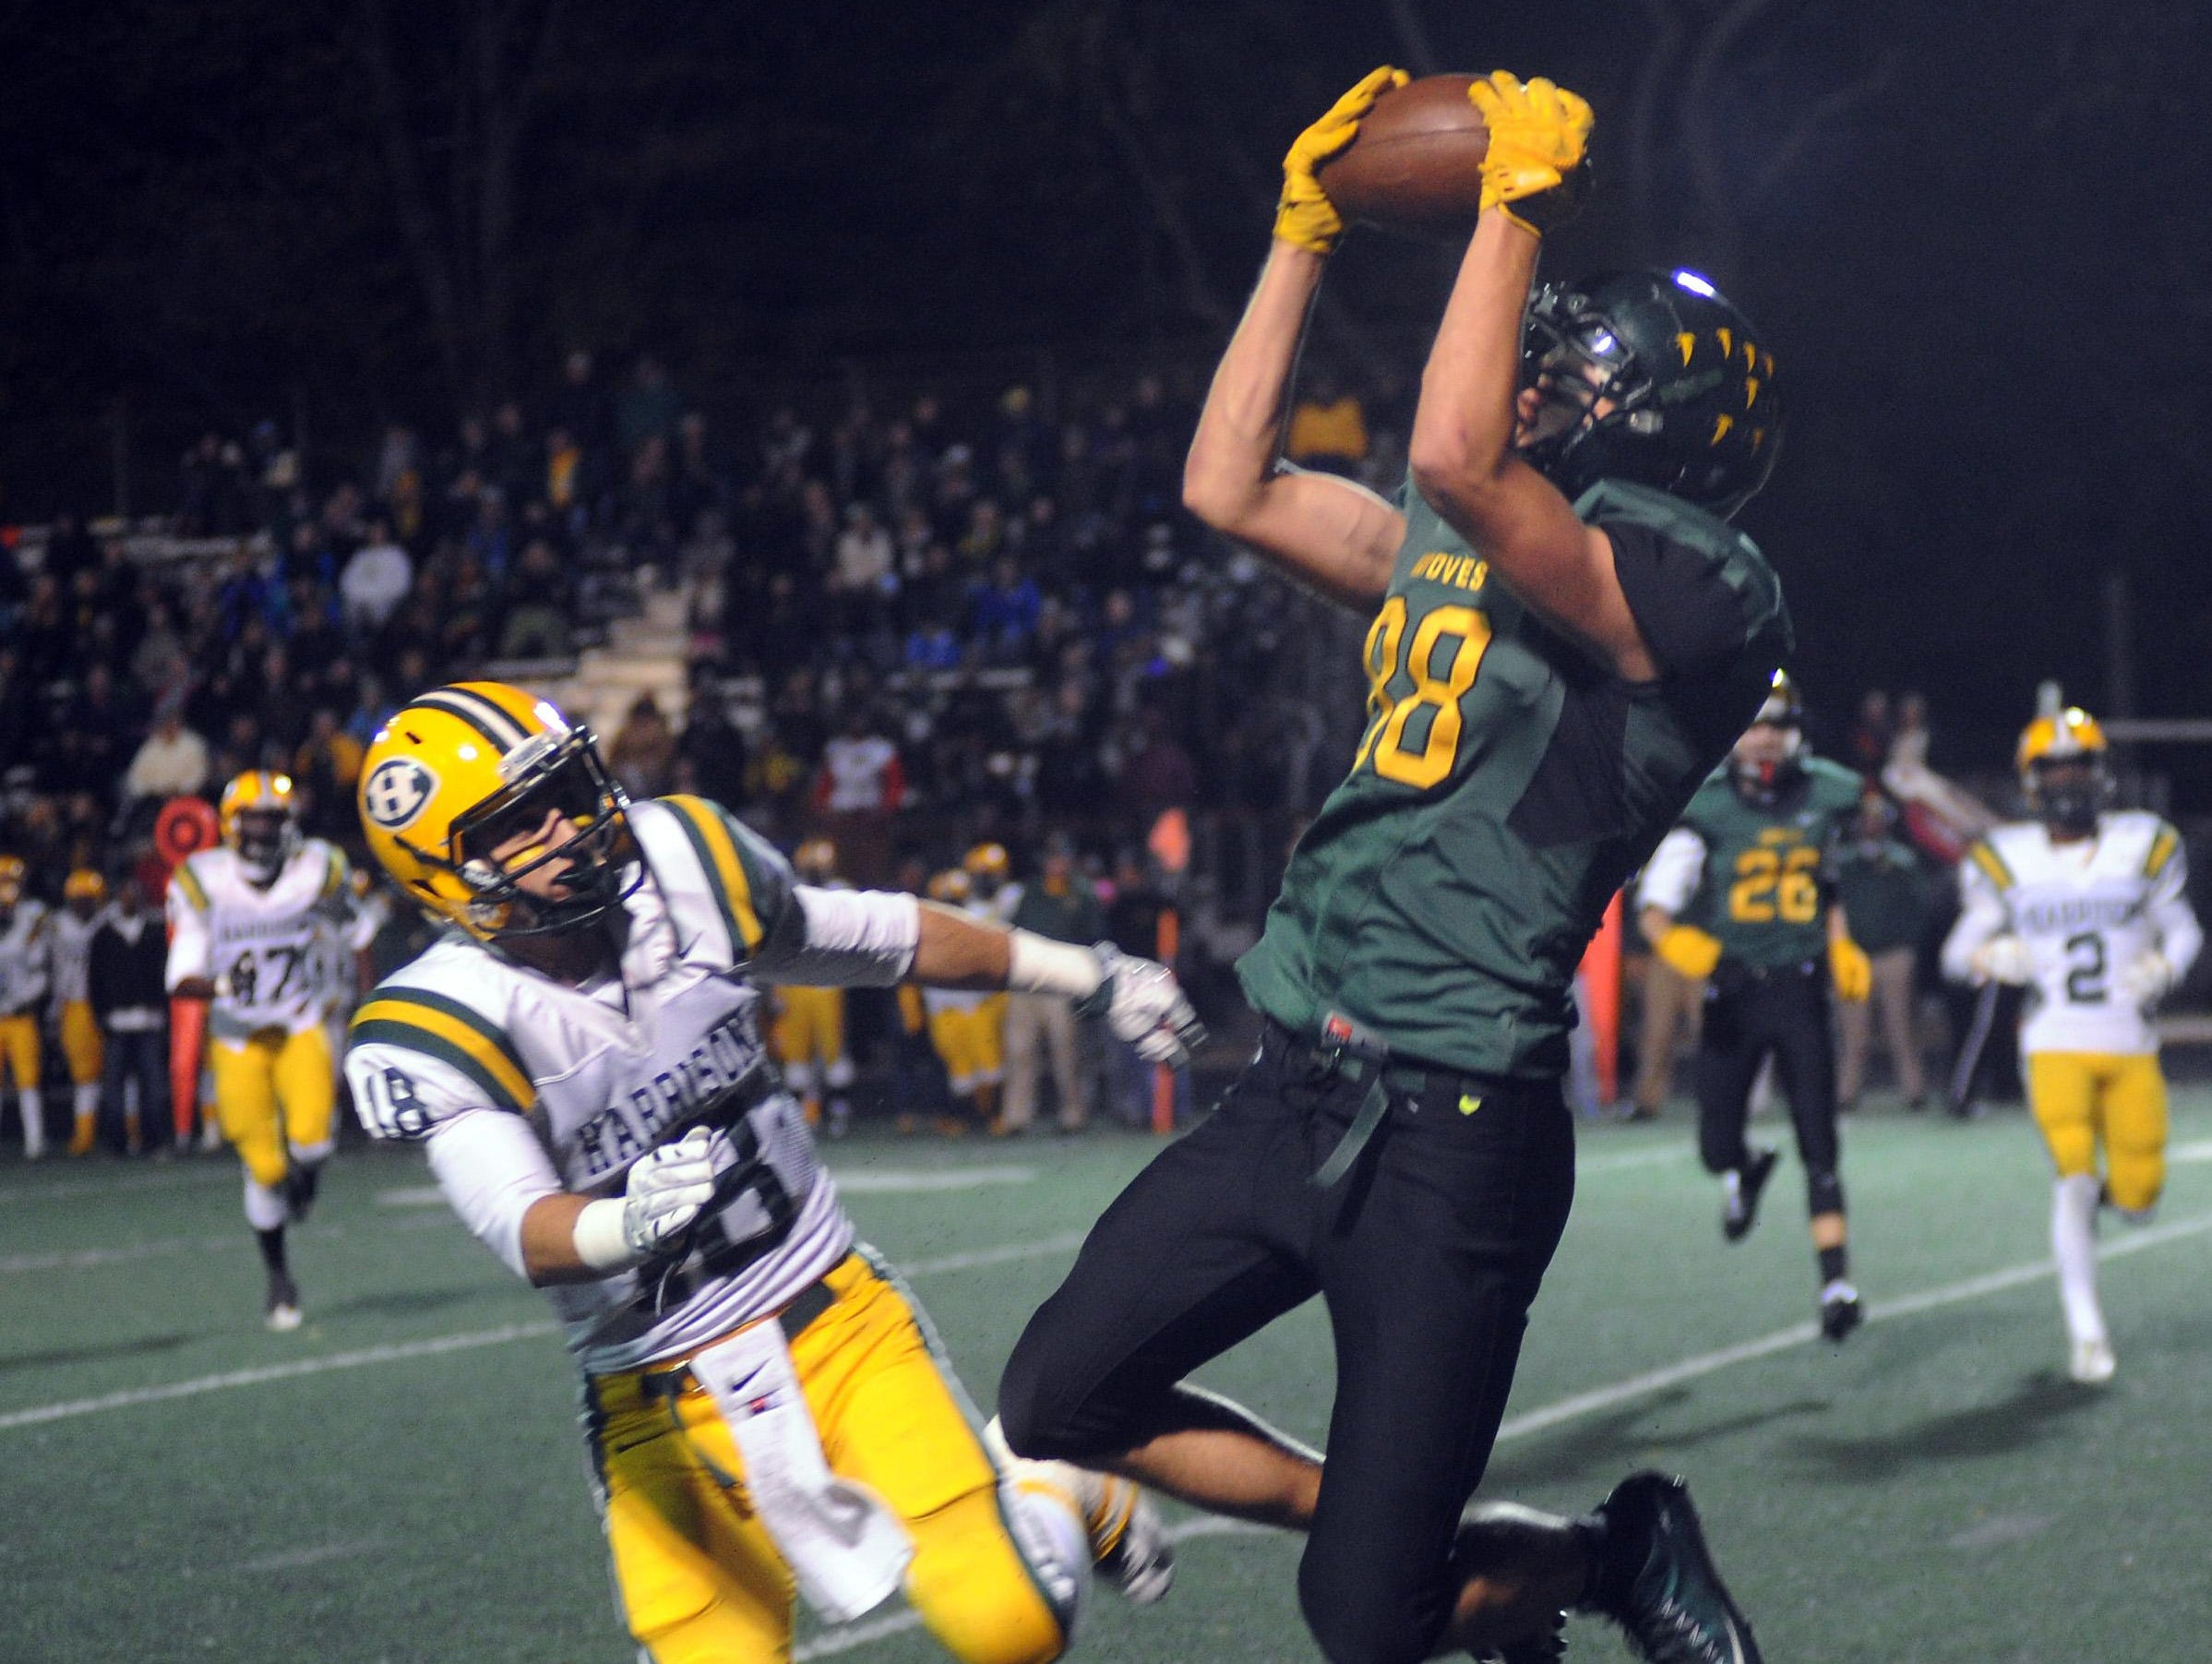 Groves tight end Drew Sheckell (88) corrals a clutch third-quarter pass much to the dismay of Harrison defender Theo Lucas (18).